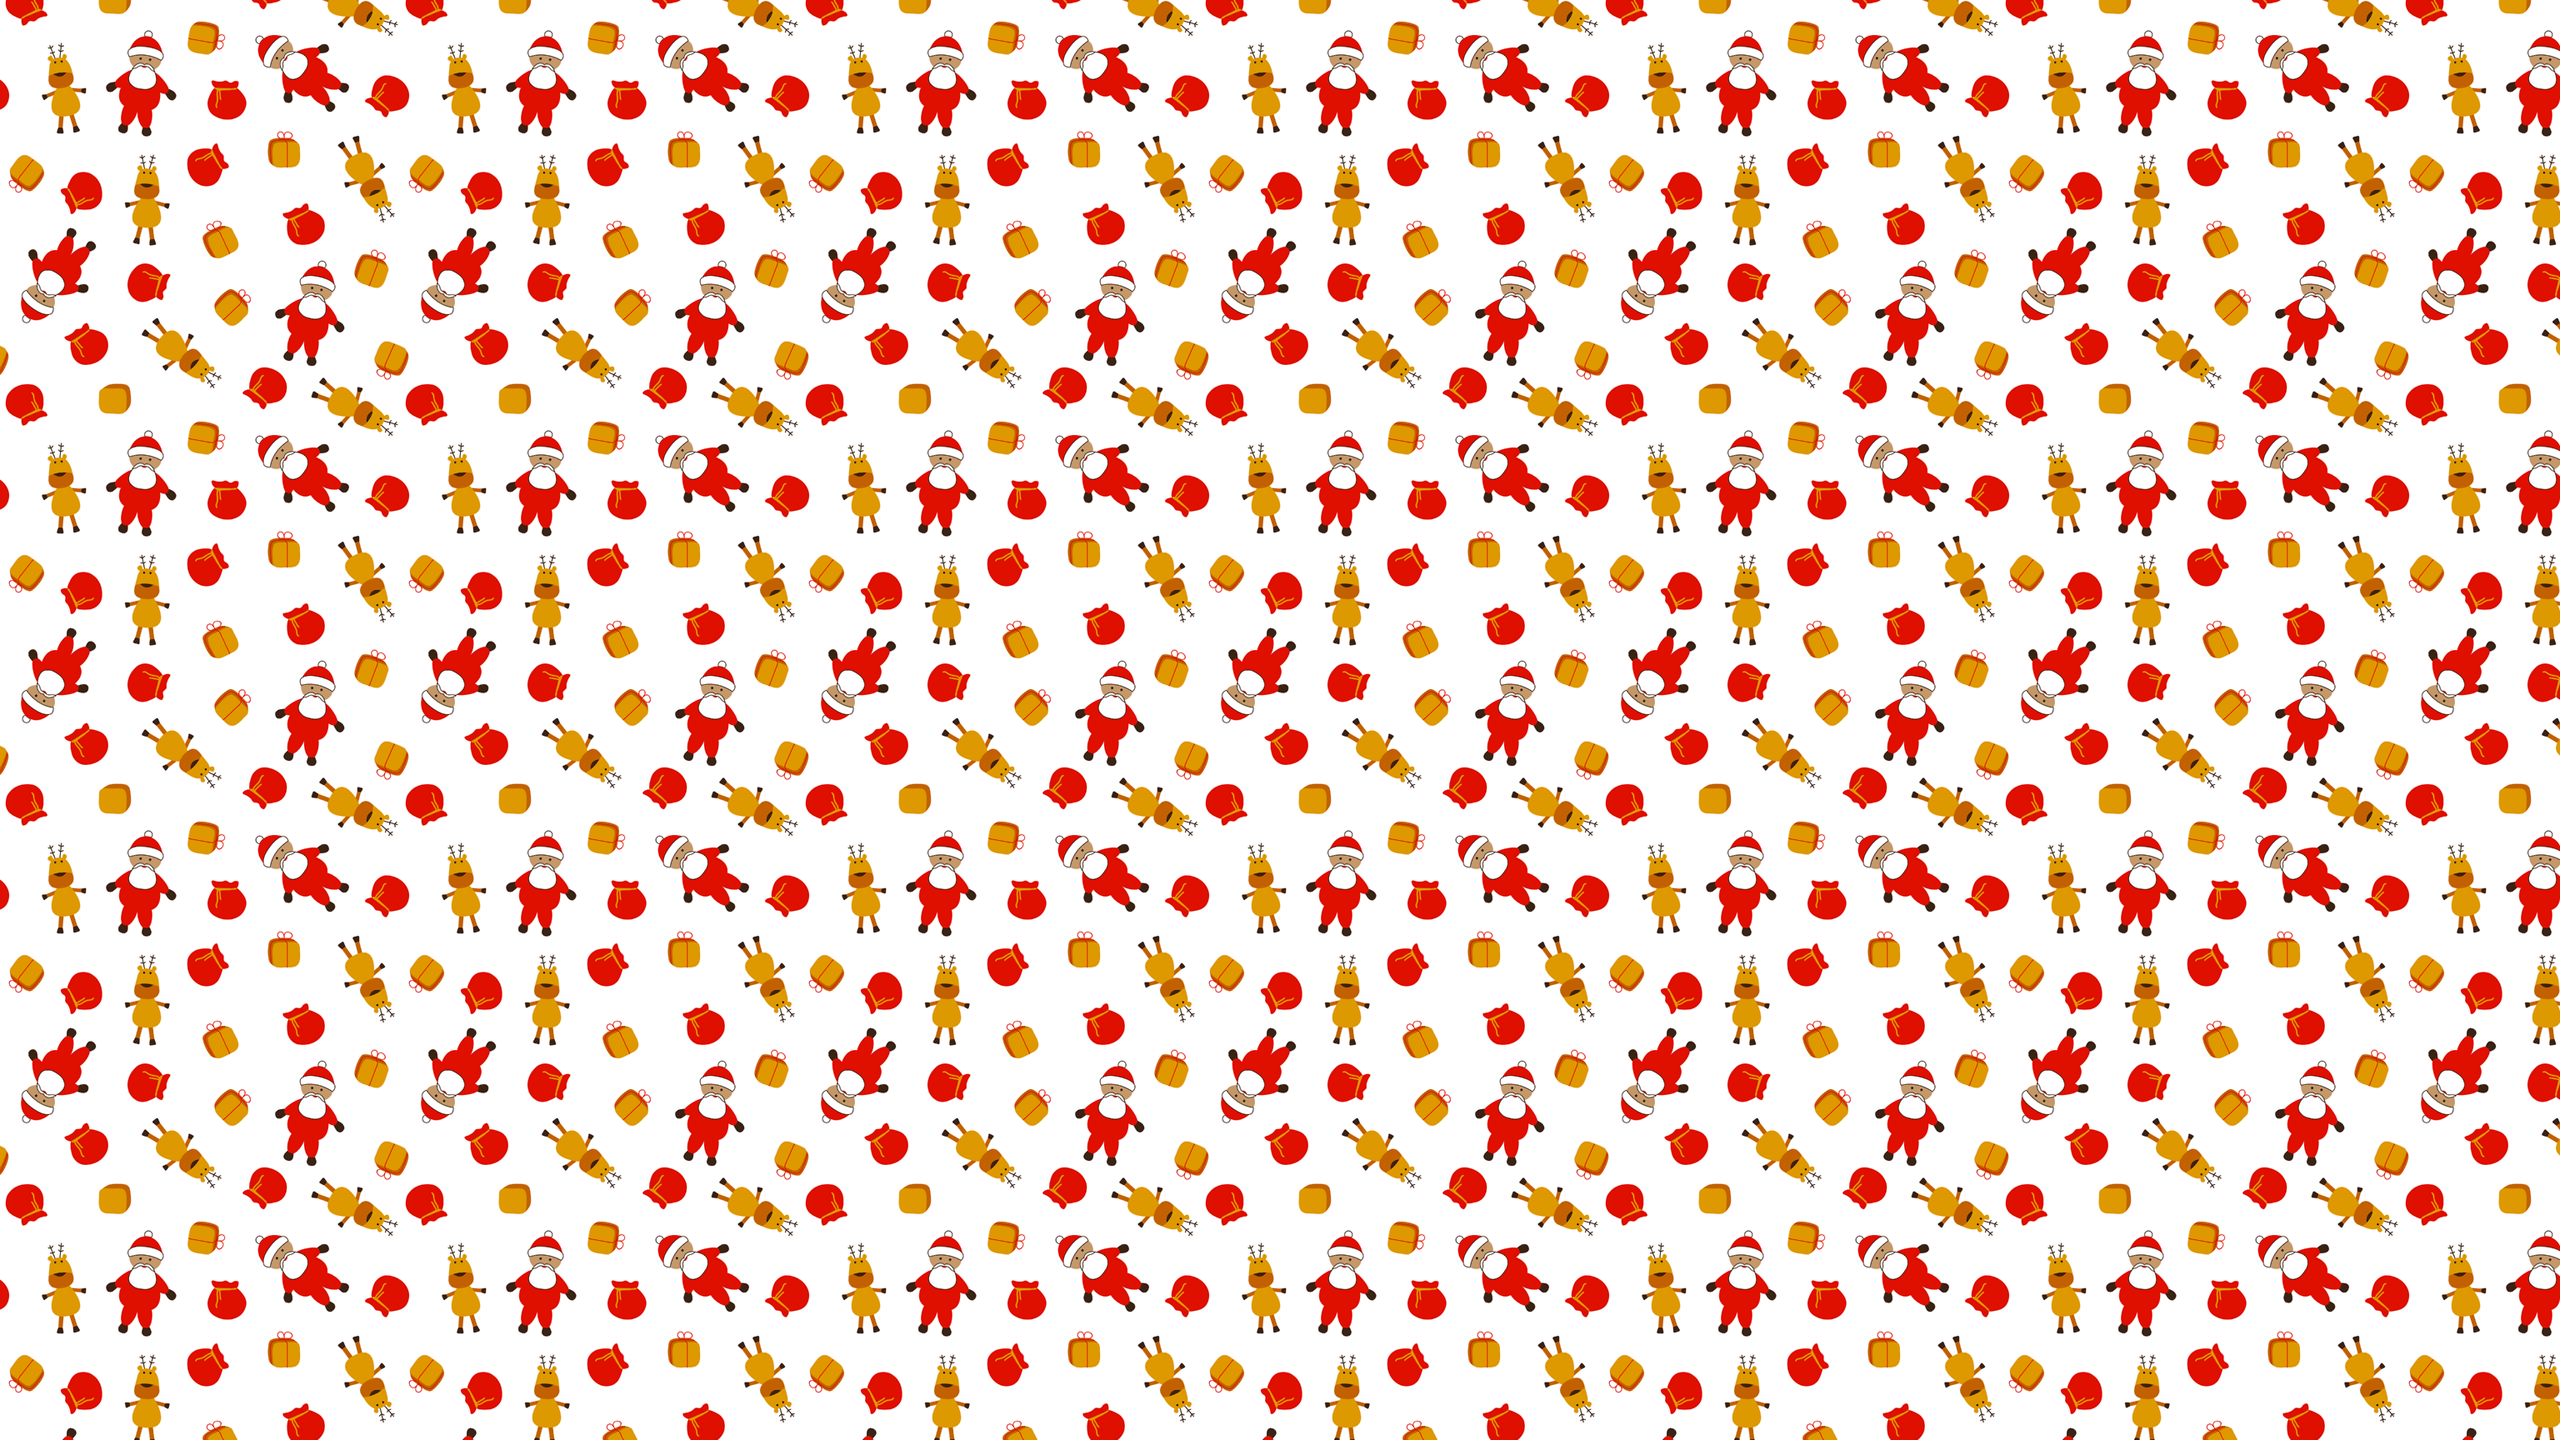 Cute Christmas Backgrounds Png Free Cute Christmas Backgrounds Png Transparent Images 54743 Pngio